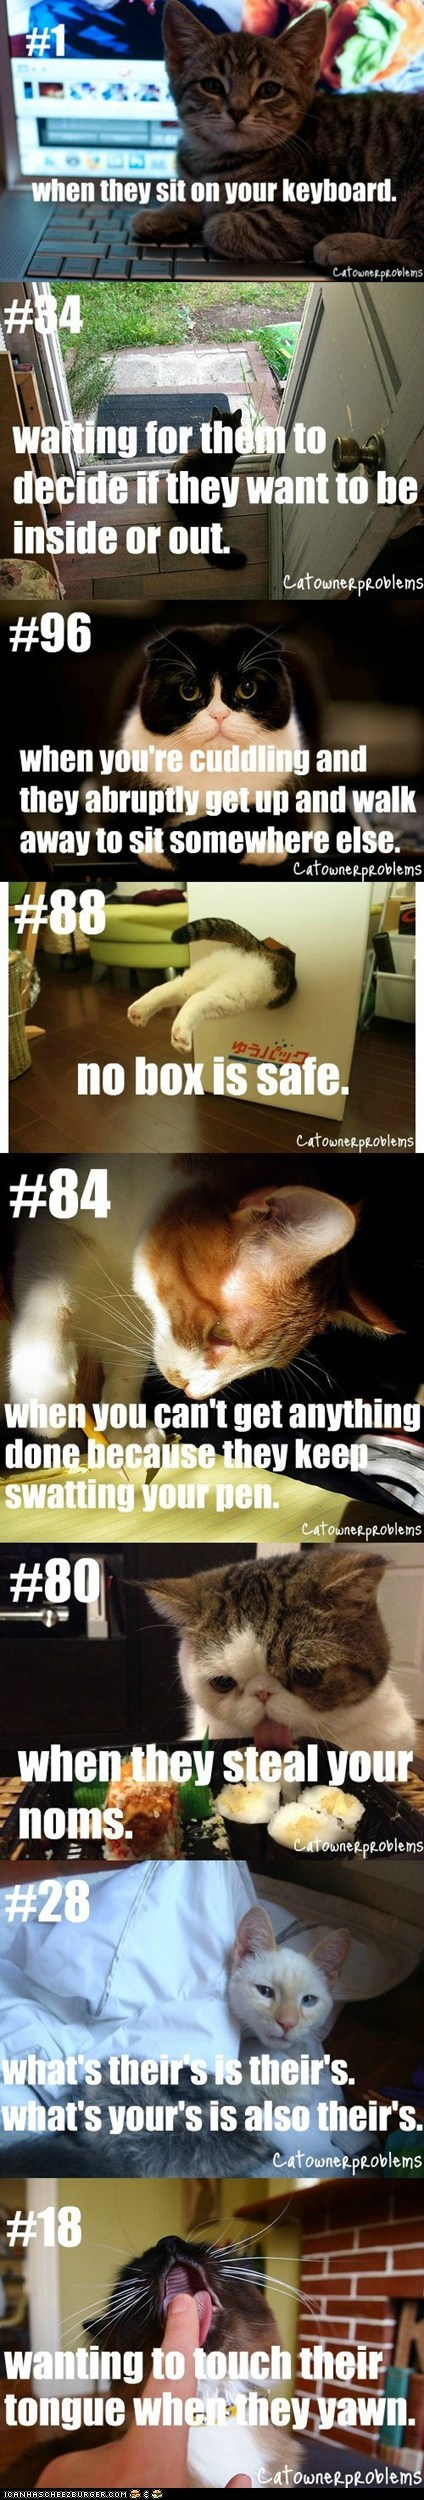 cat owner problems,cat owners,Cats,complaints,Hall of Fame,multipanel,owners,problems